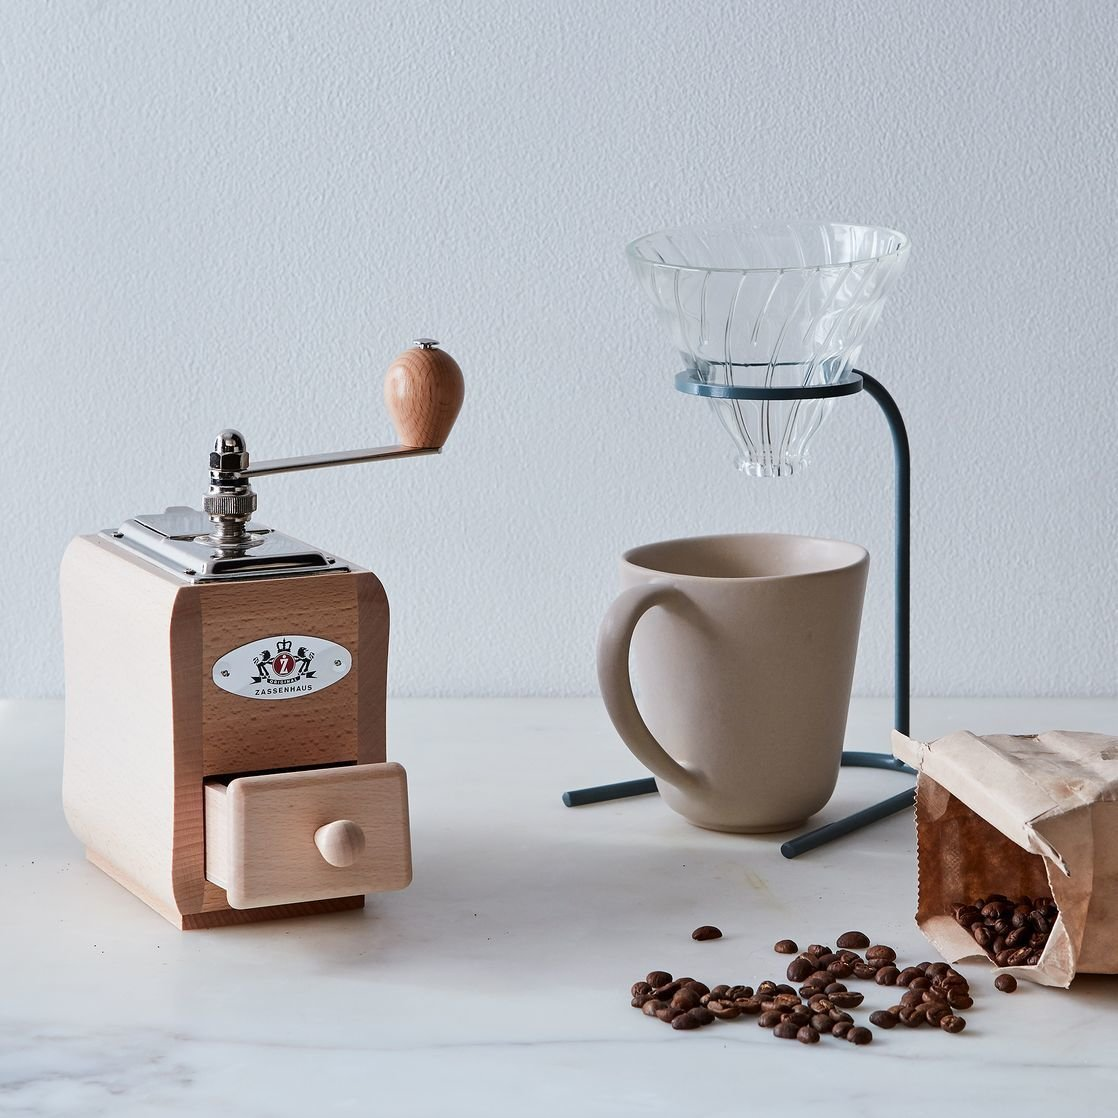 Base Modern Minimalist Coffee Pour-Over Stand By Food52